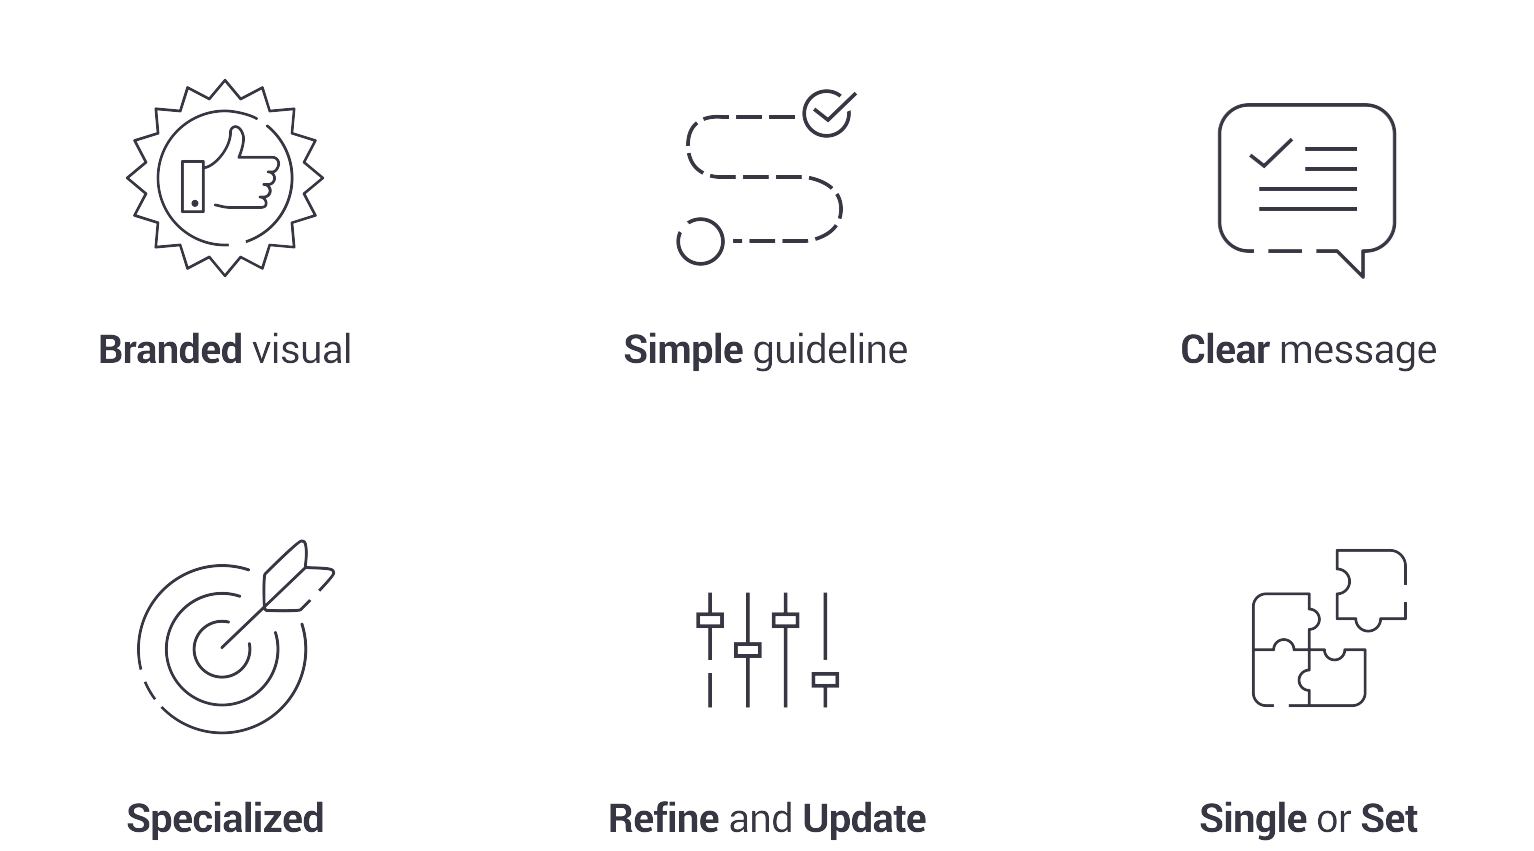 Mave 6 Key Features for web 01.png